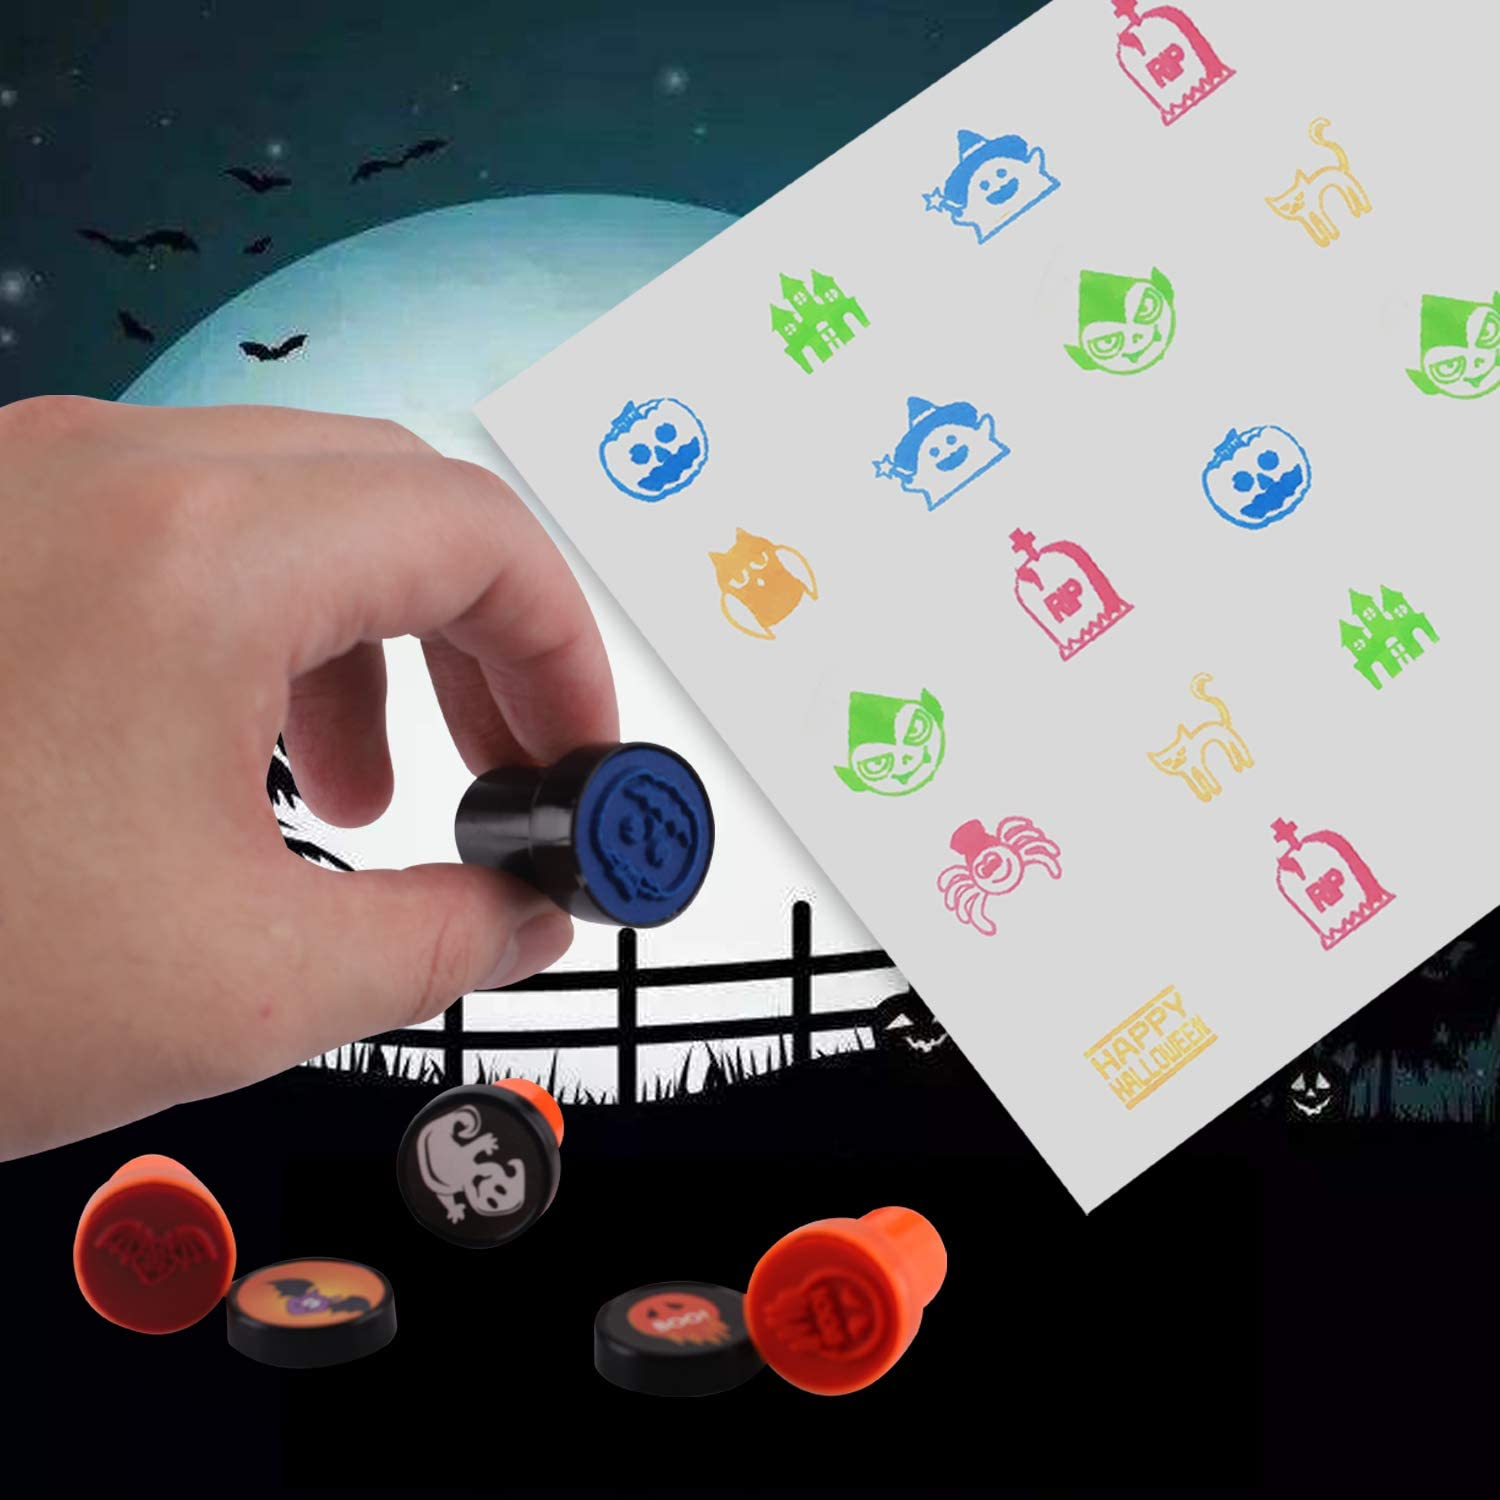 24 Pcs Assorted Halloween Stamps 24 Designs Holiday Toy Gift Halloween Game Prizes For Kids Children Self-Ink Stampers For Party